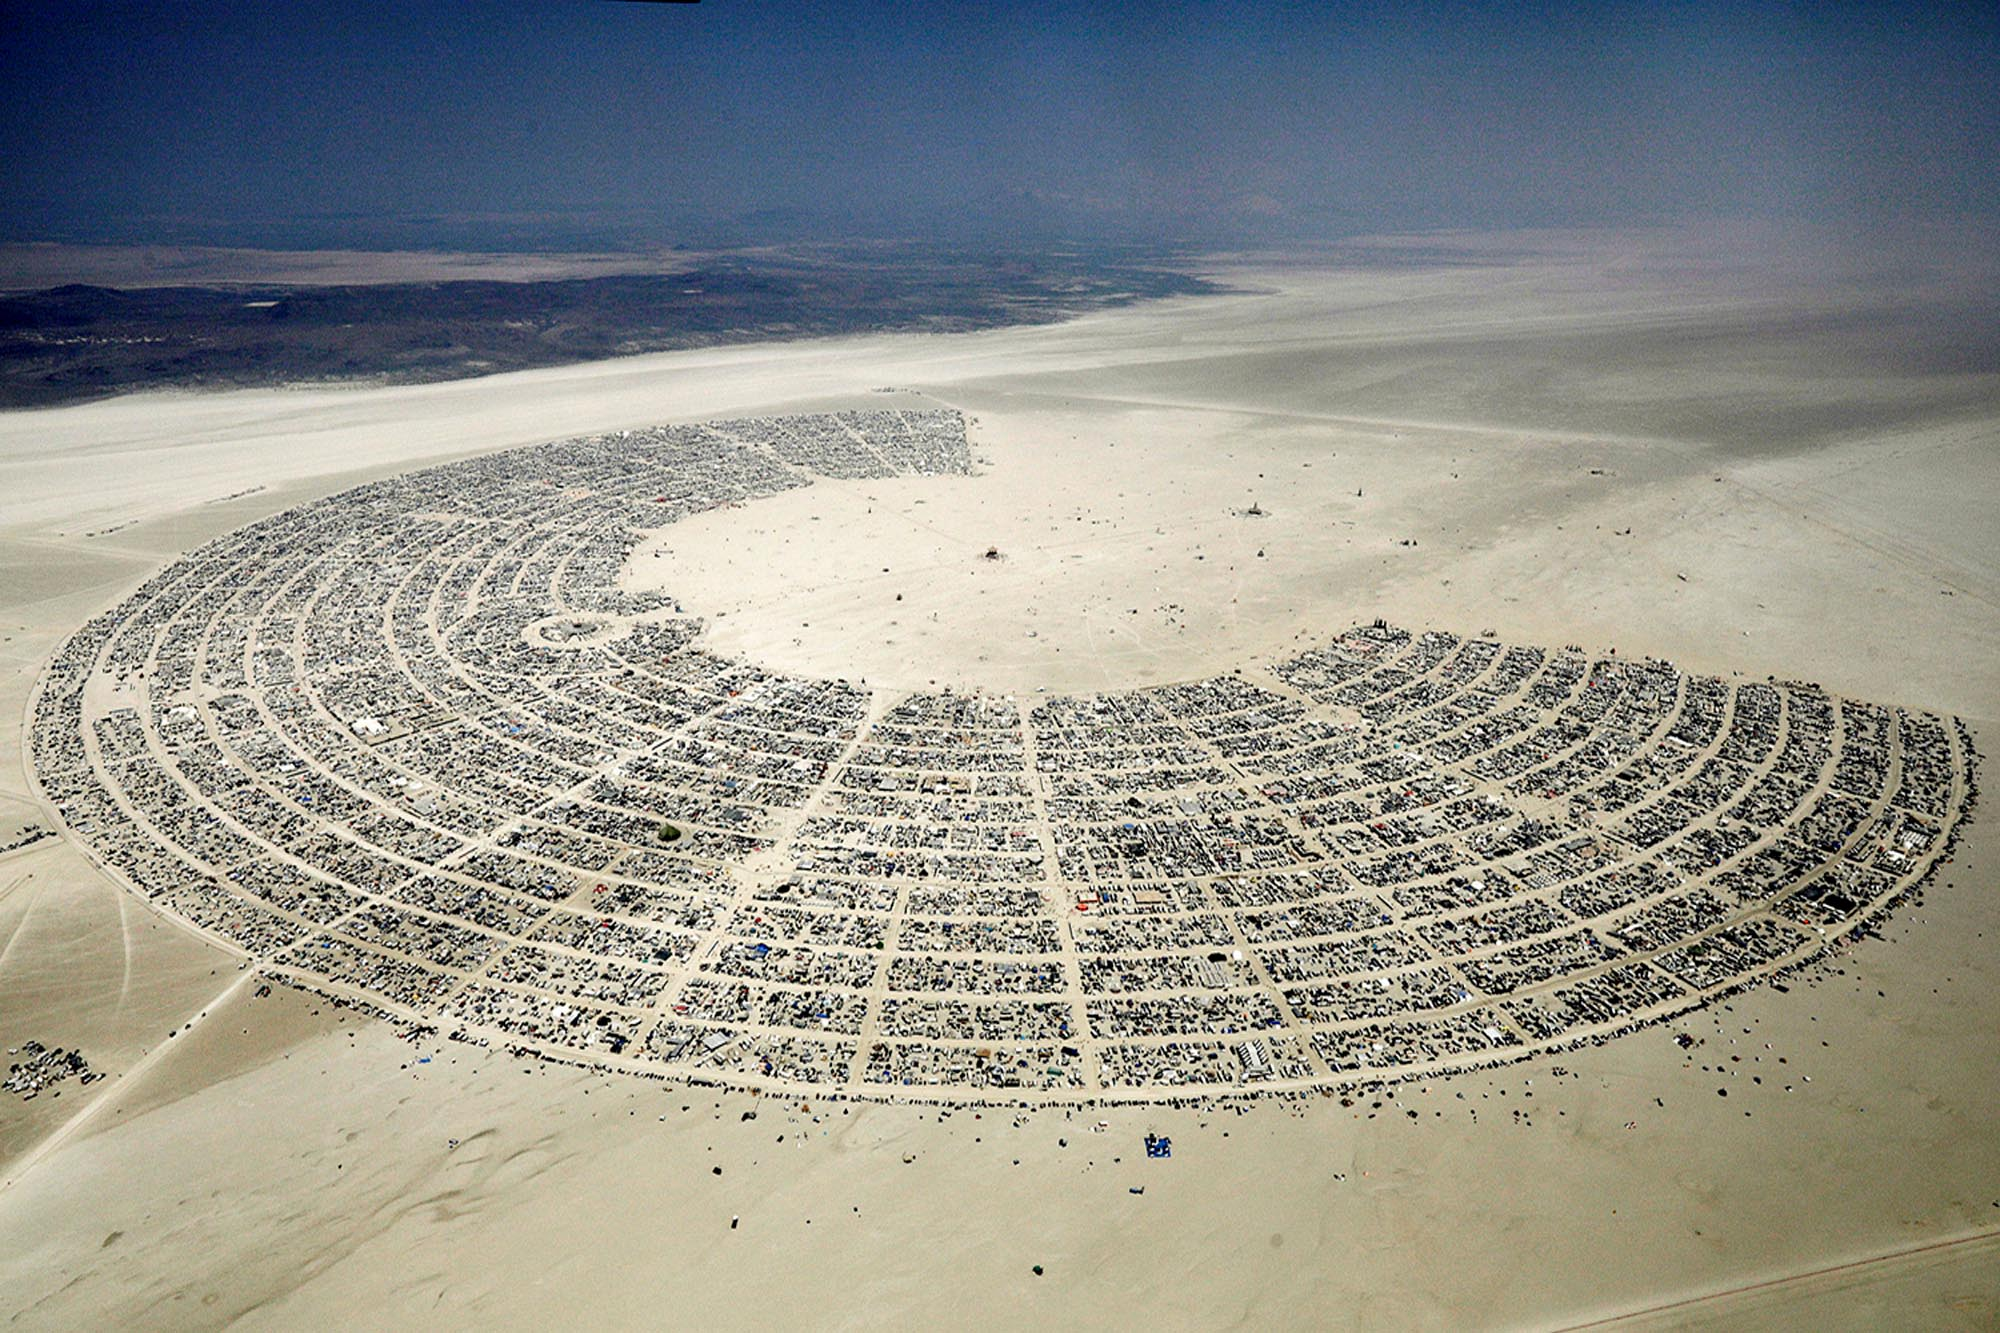 Black Rock City, in concentric semi-circles